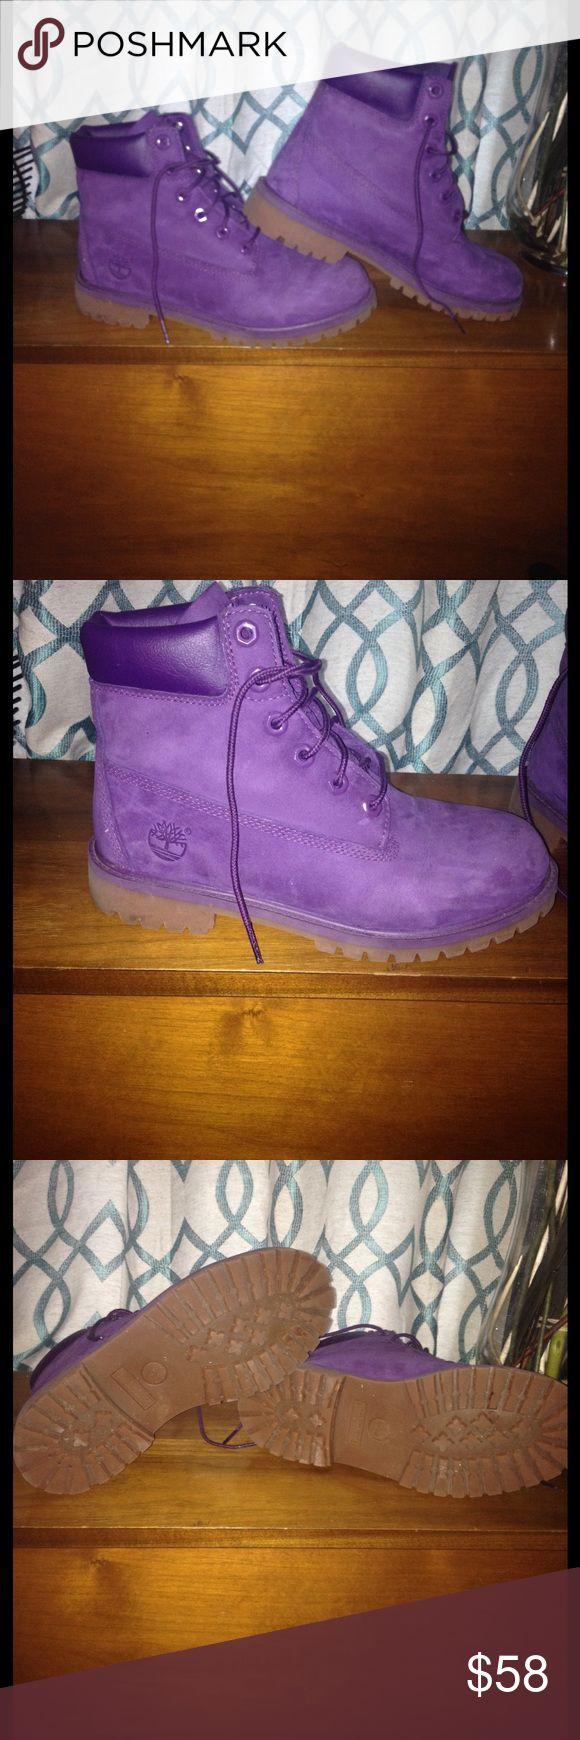 """Kids purple Timberland boots...💜 These are a size 6 kids. The can crossover to a  8/9 (women's size) They are in excellent condition and show little to no wear. Remember to hit the """"offer"""" button... Timberland Shoes Boots"""